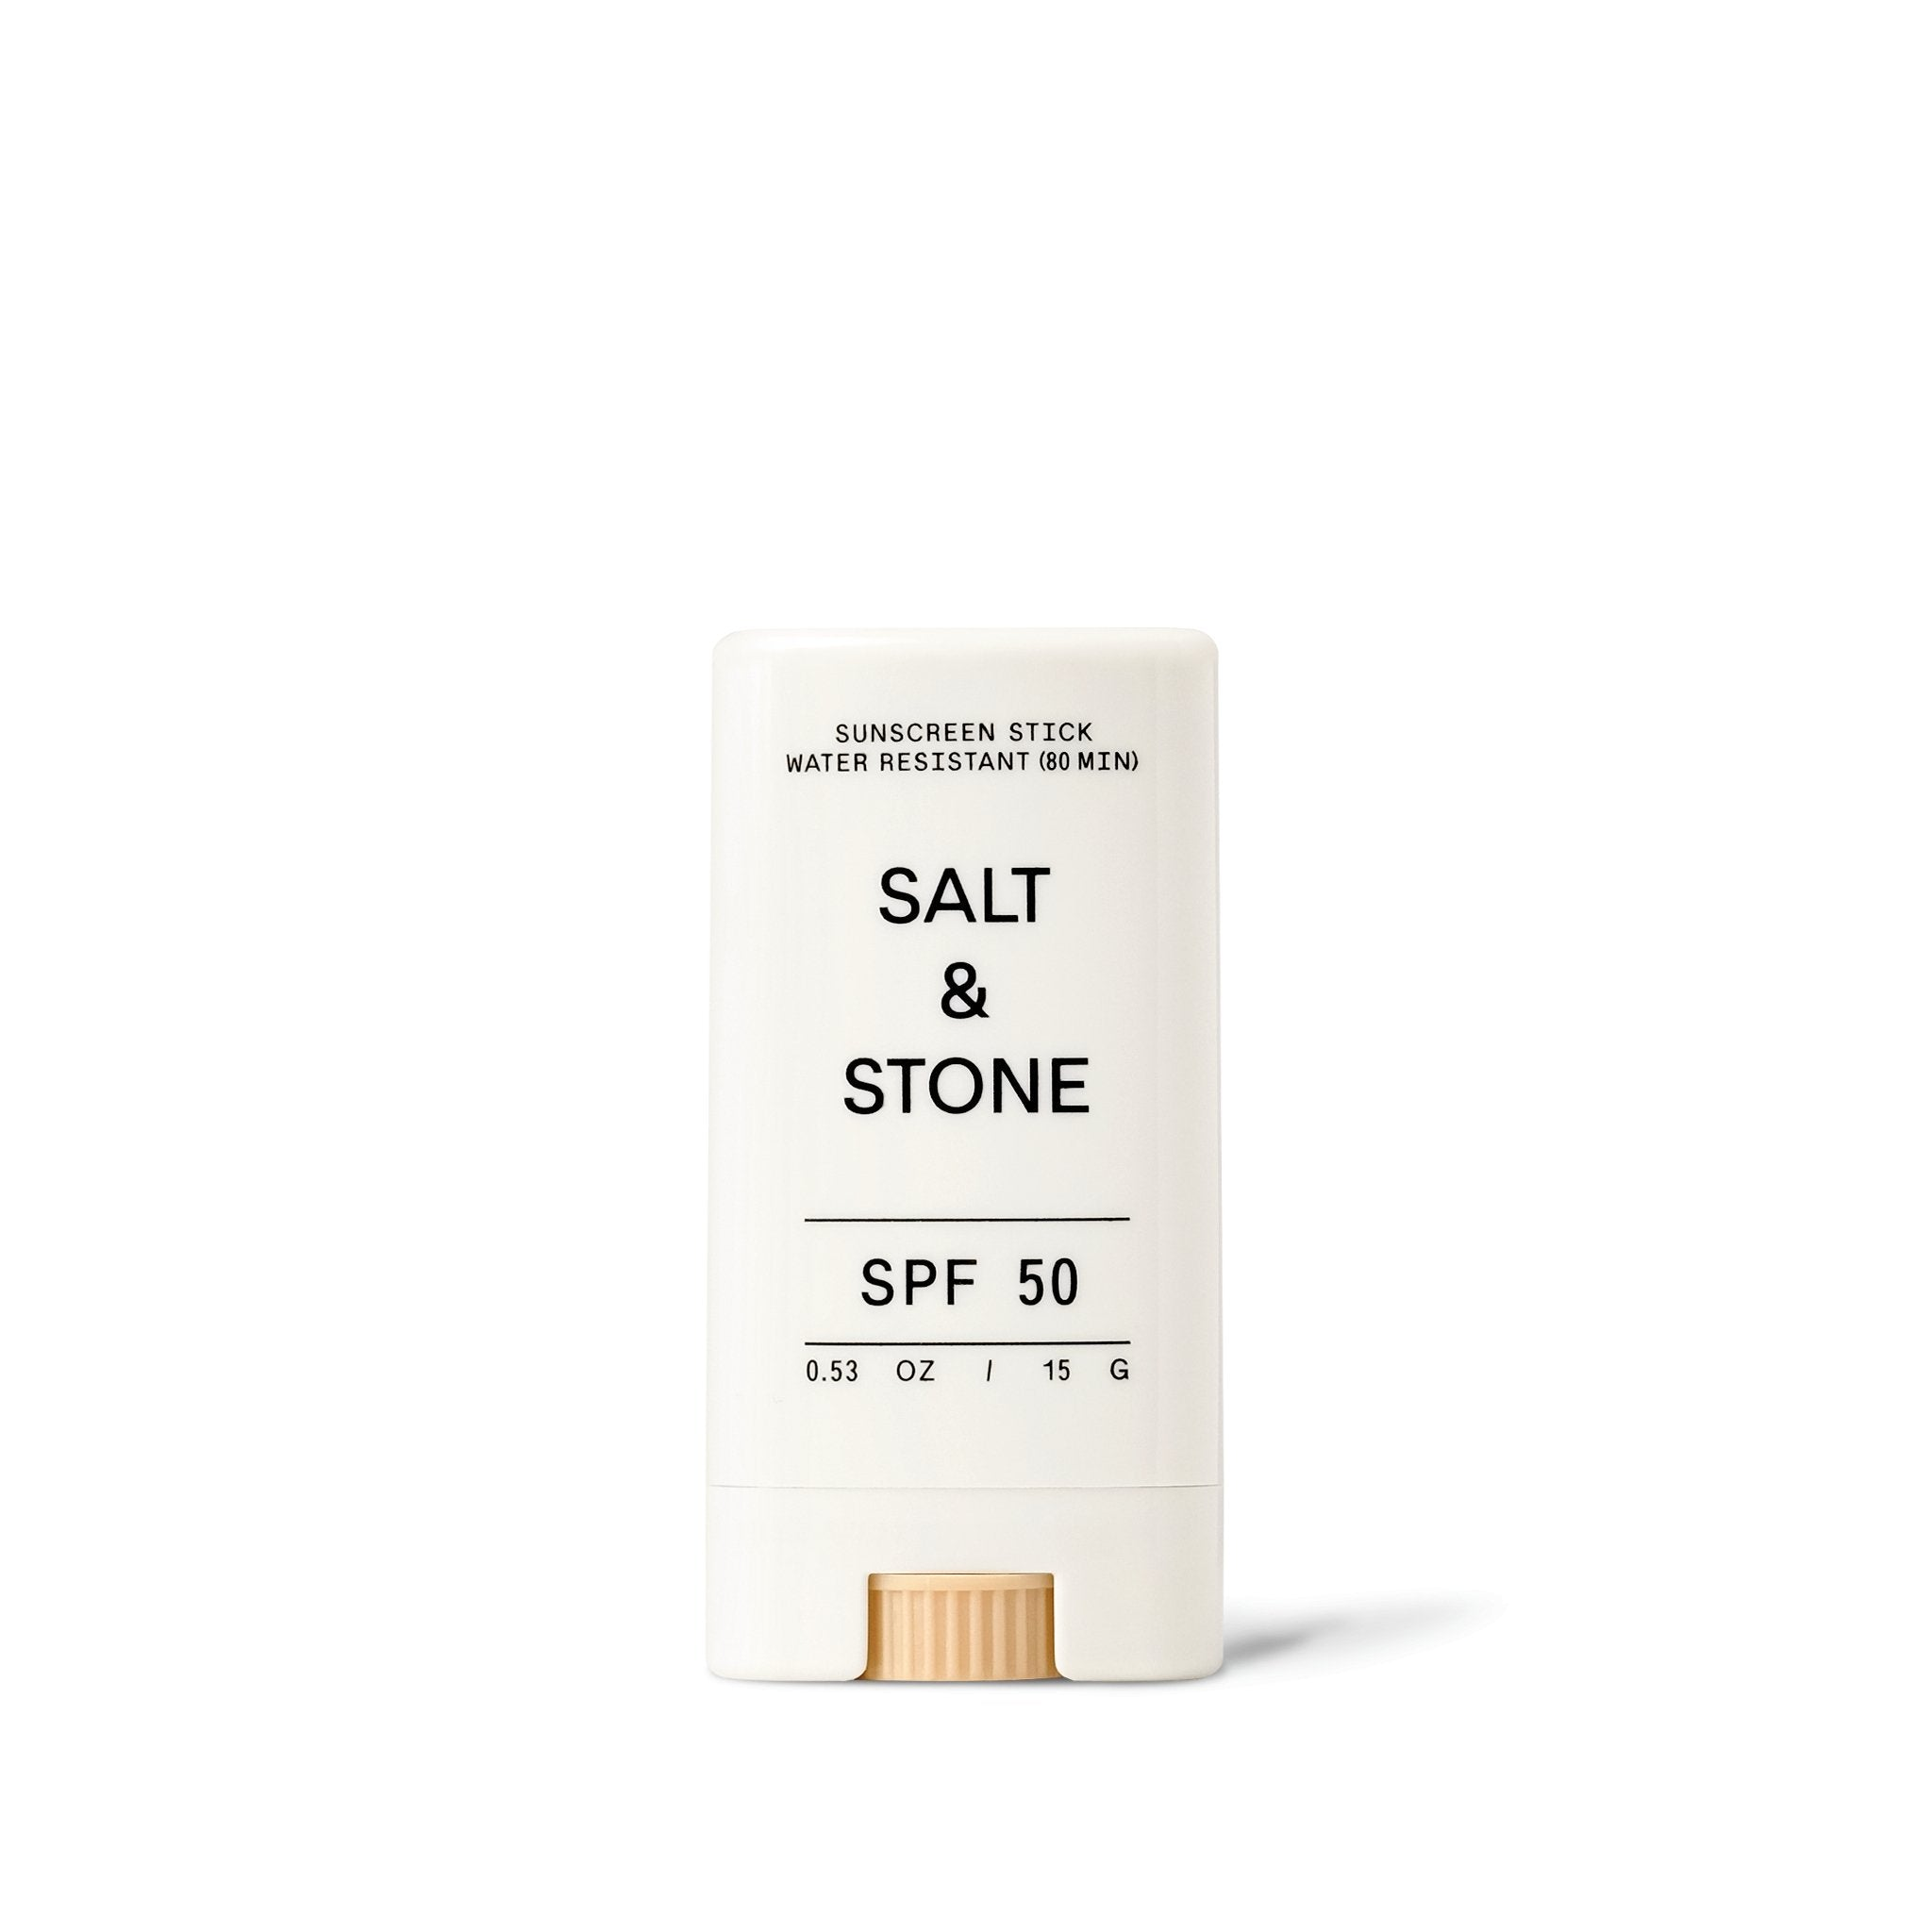 SPF 50 Face Sunscreen Stick by Salt and Stone